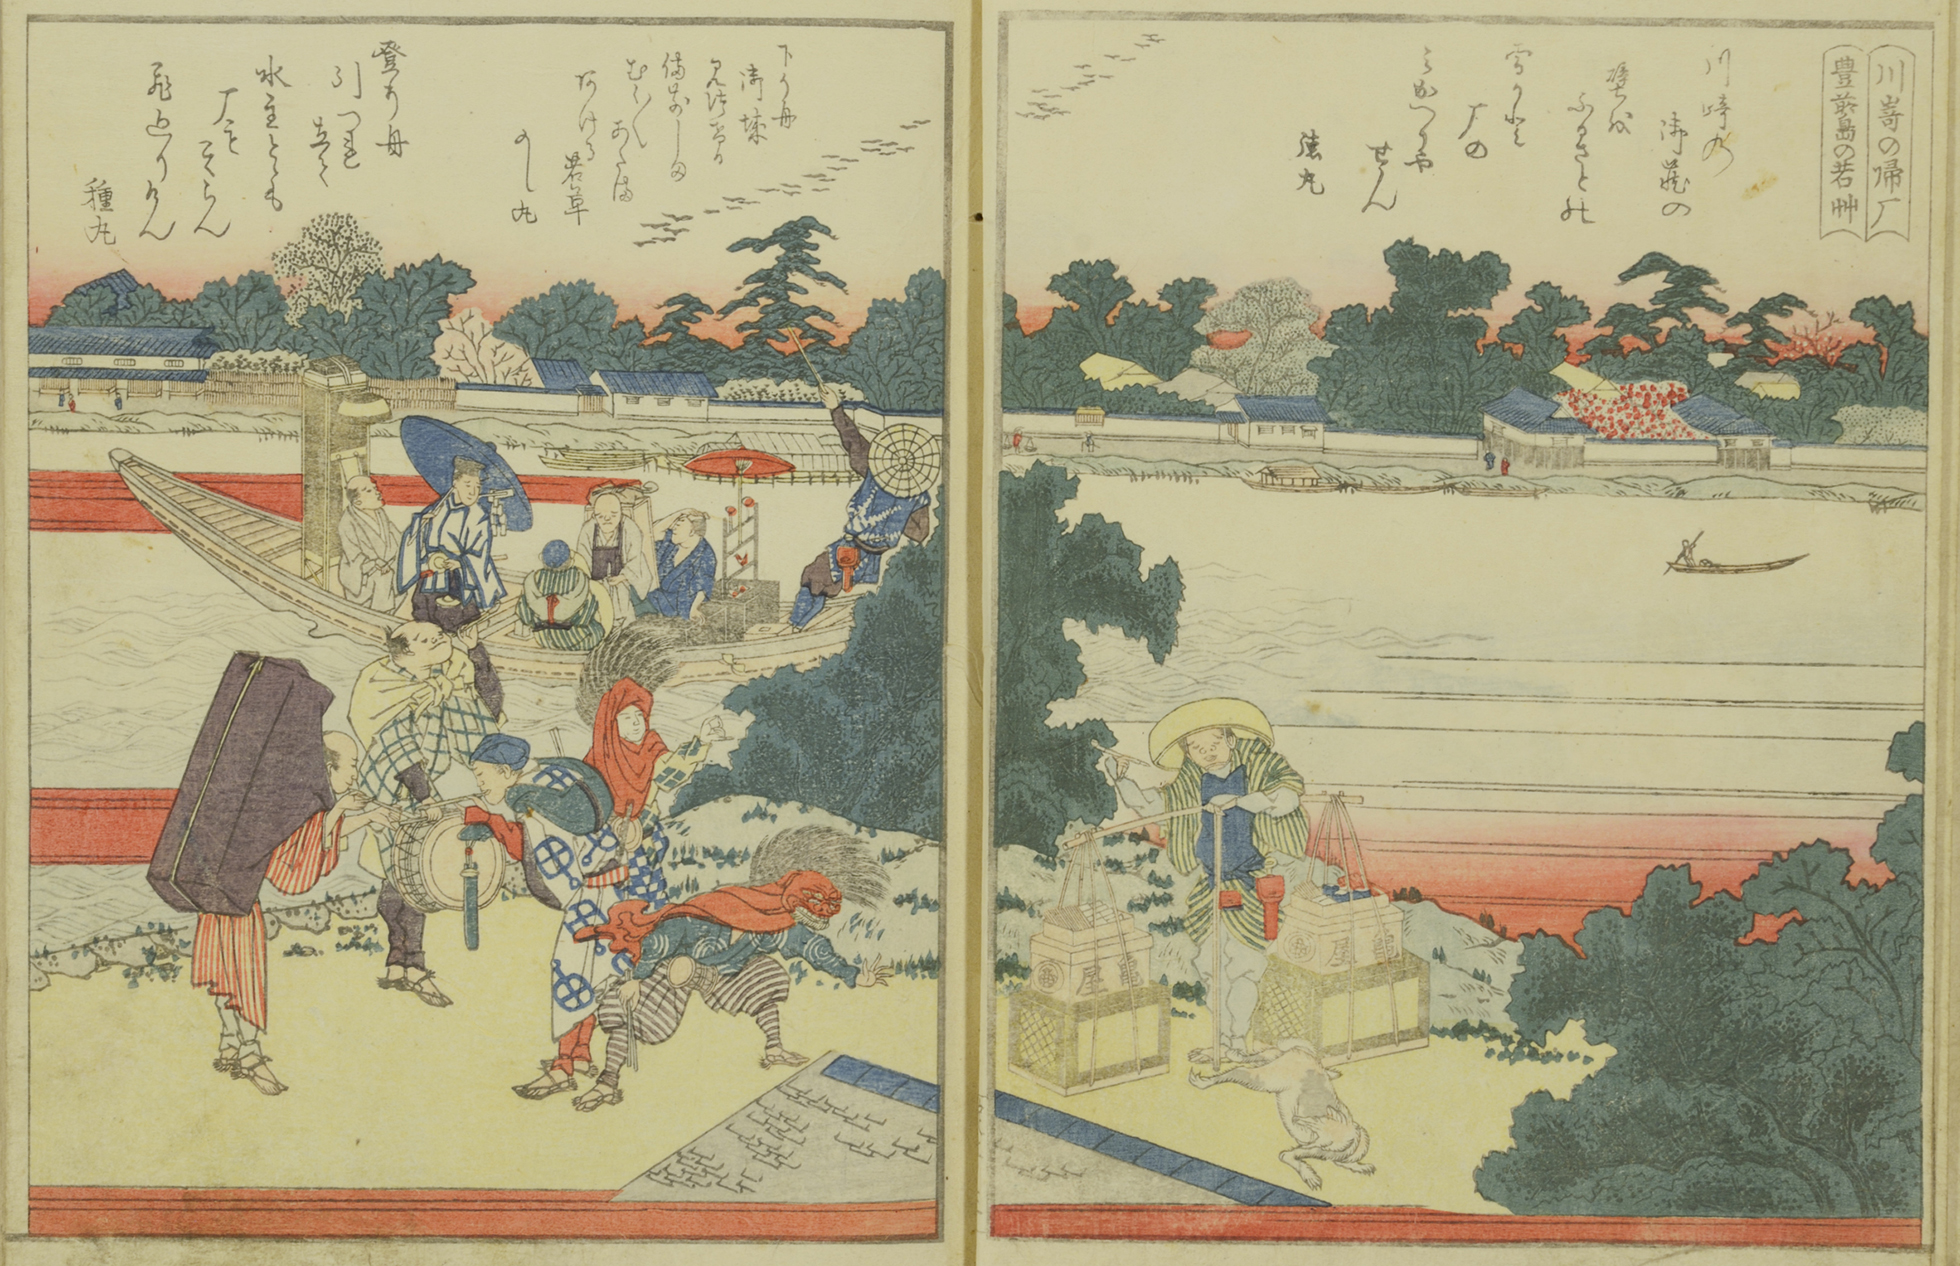 A colour woodblock print showing a group traveling down the Yodo river in a boat, with another entourage with baggage standing on the bank.